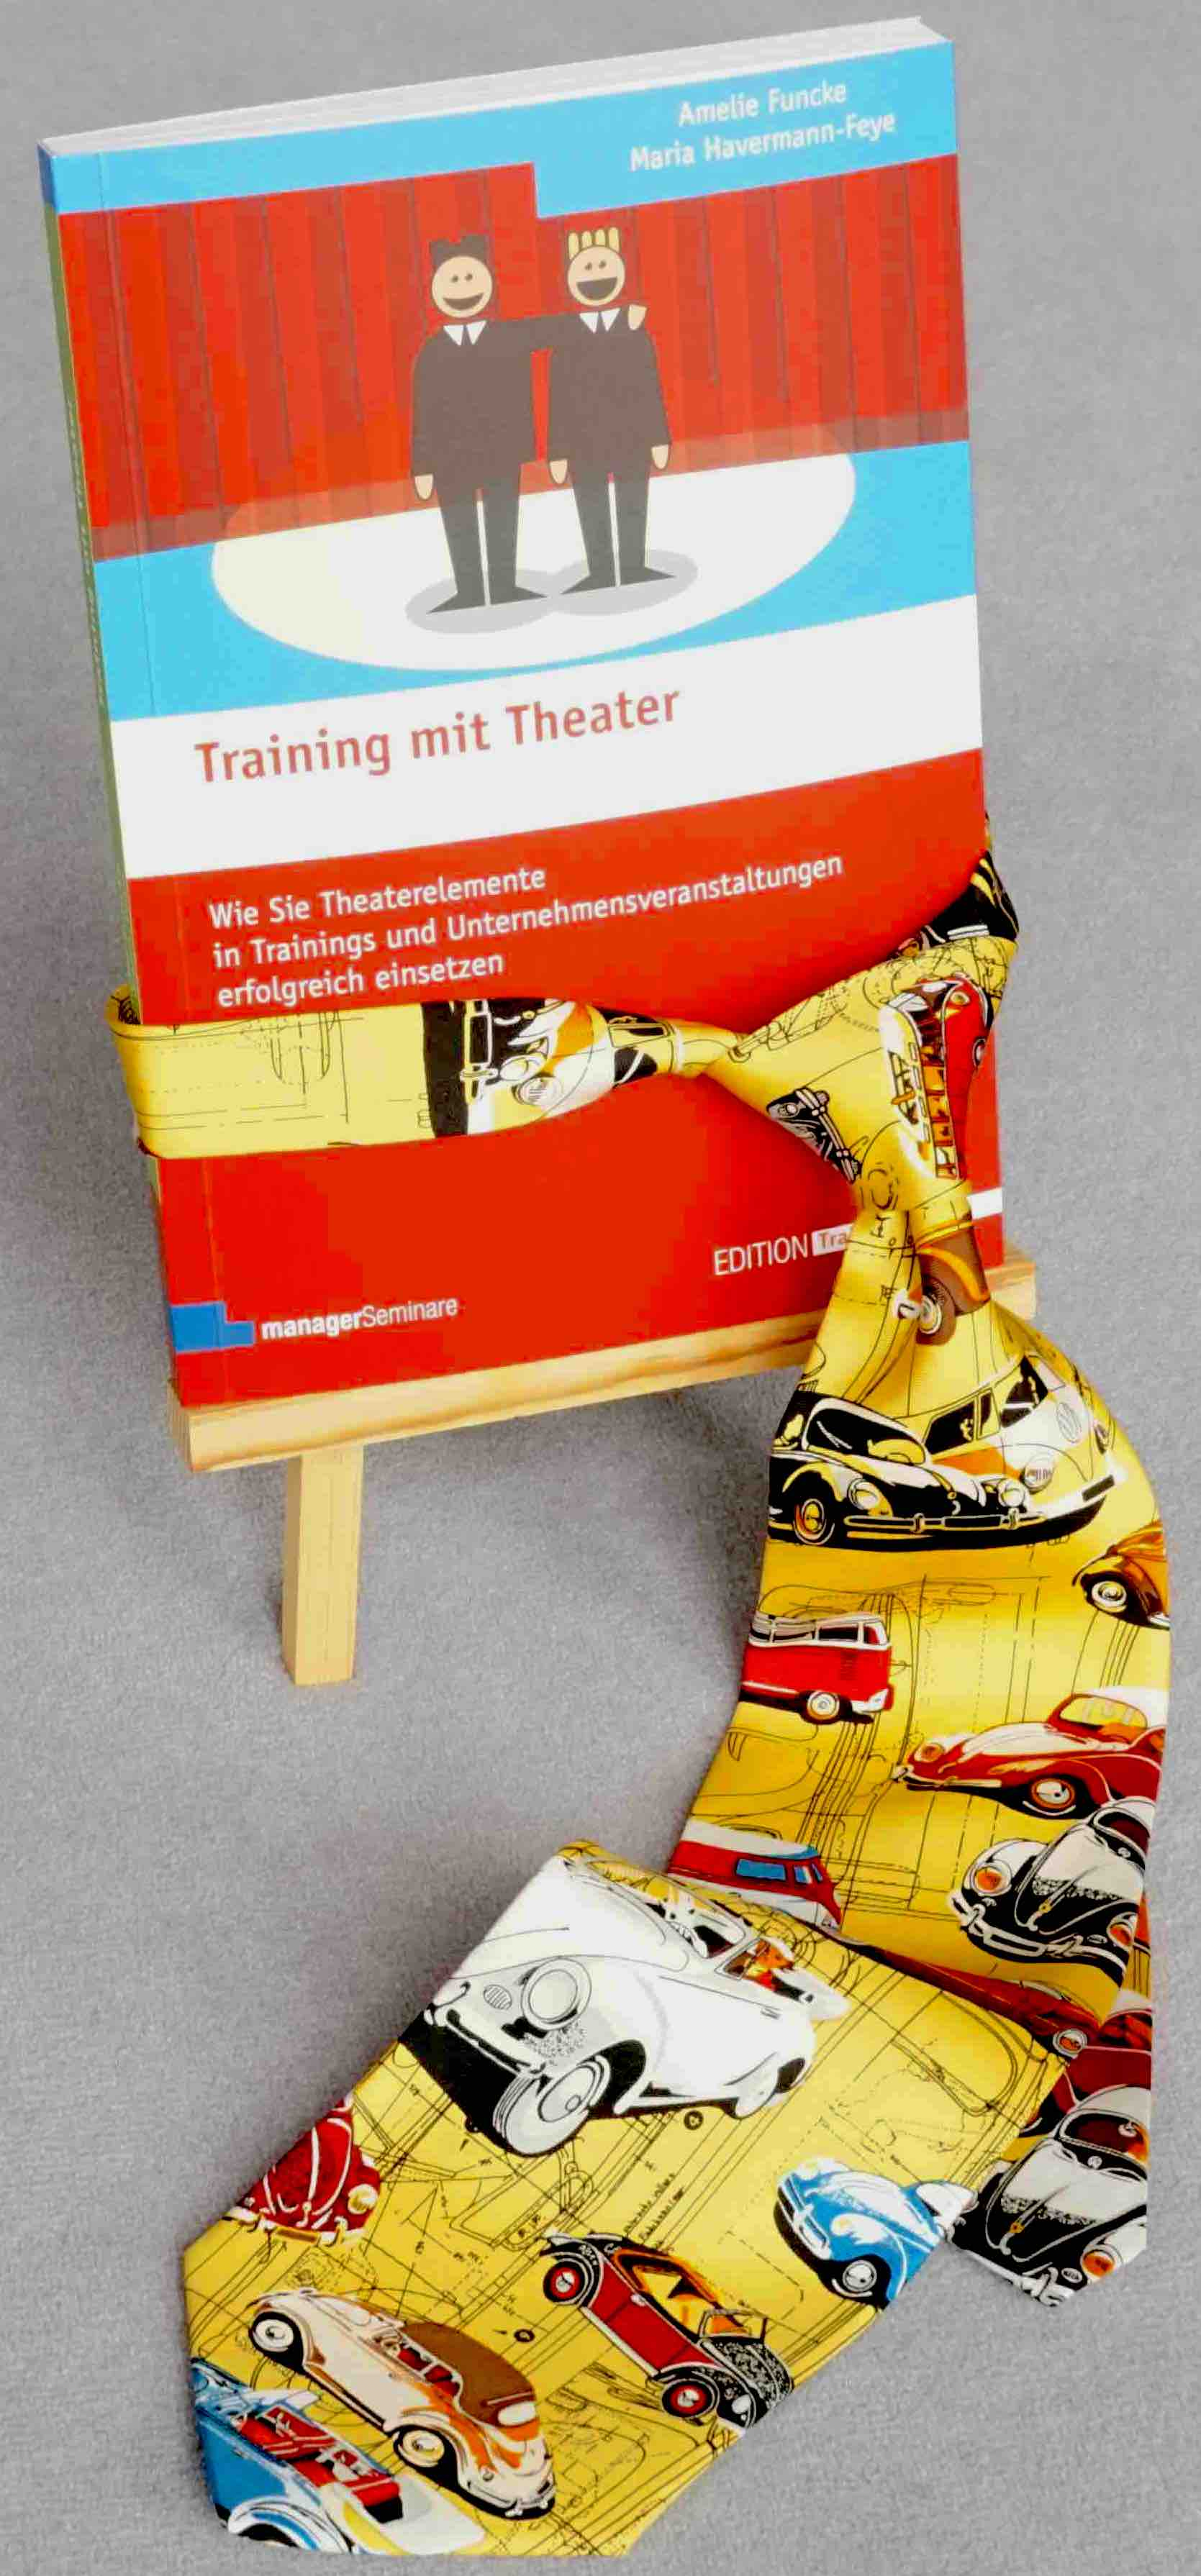 Funke/Havermann-Feye (2015): Training mit Theater